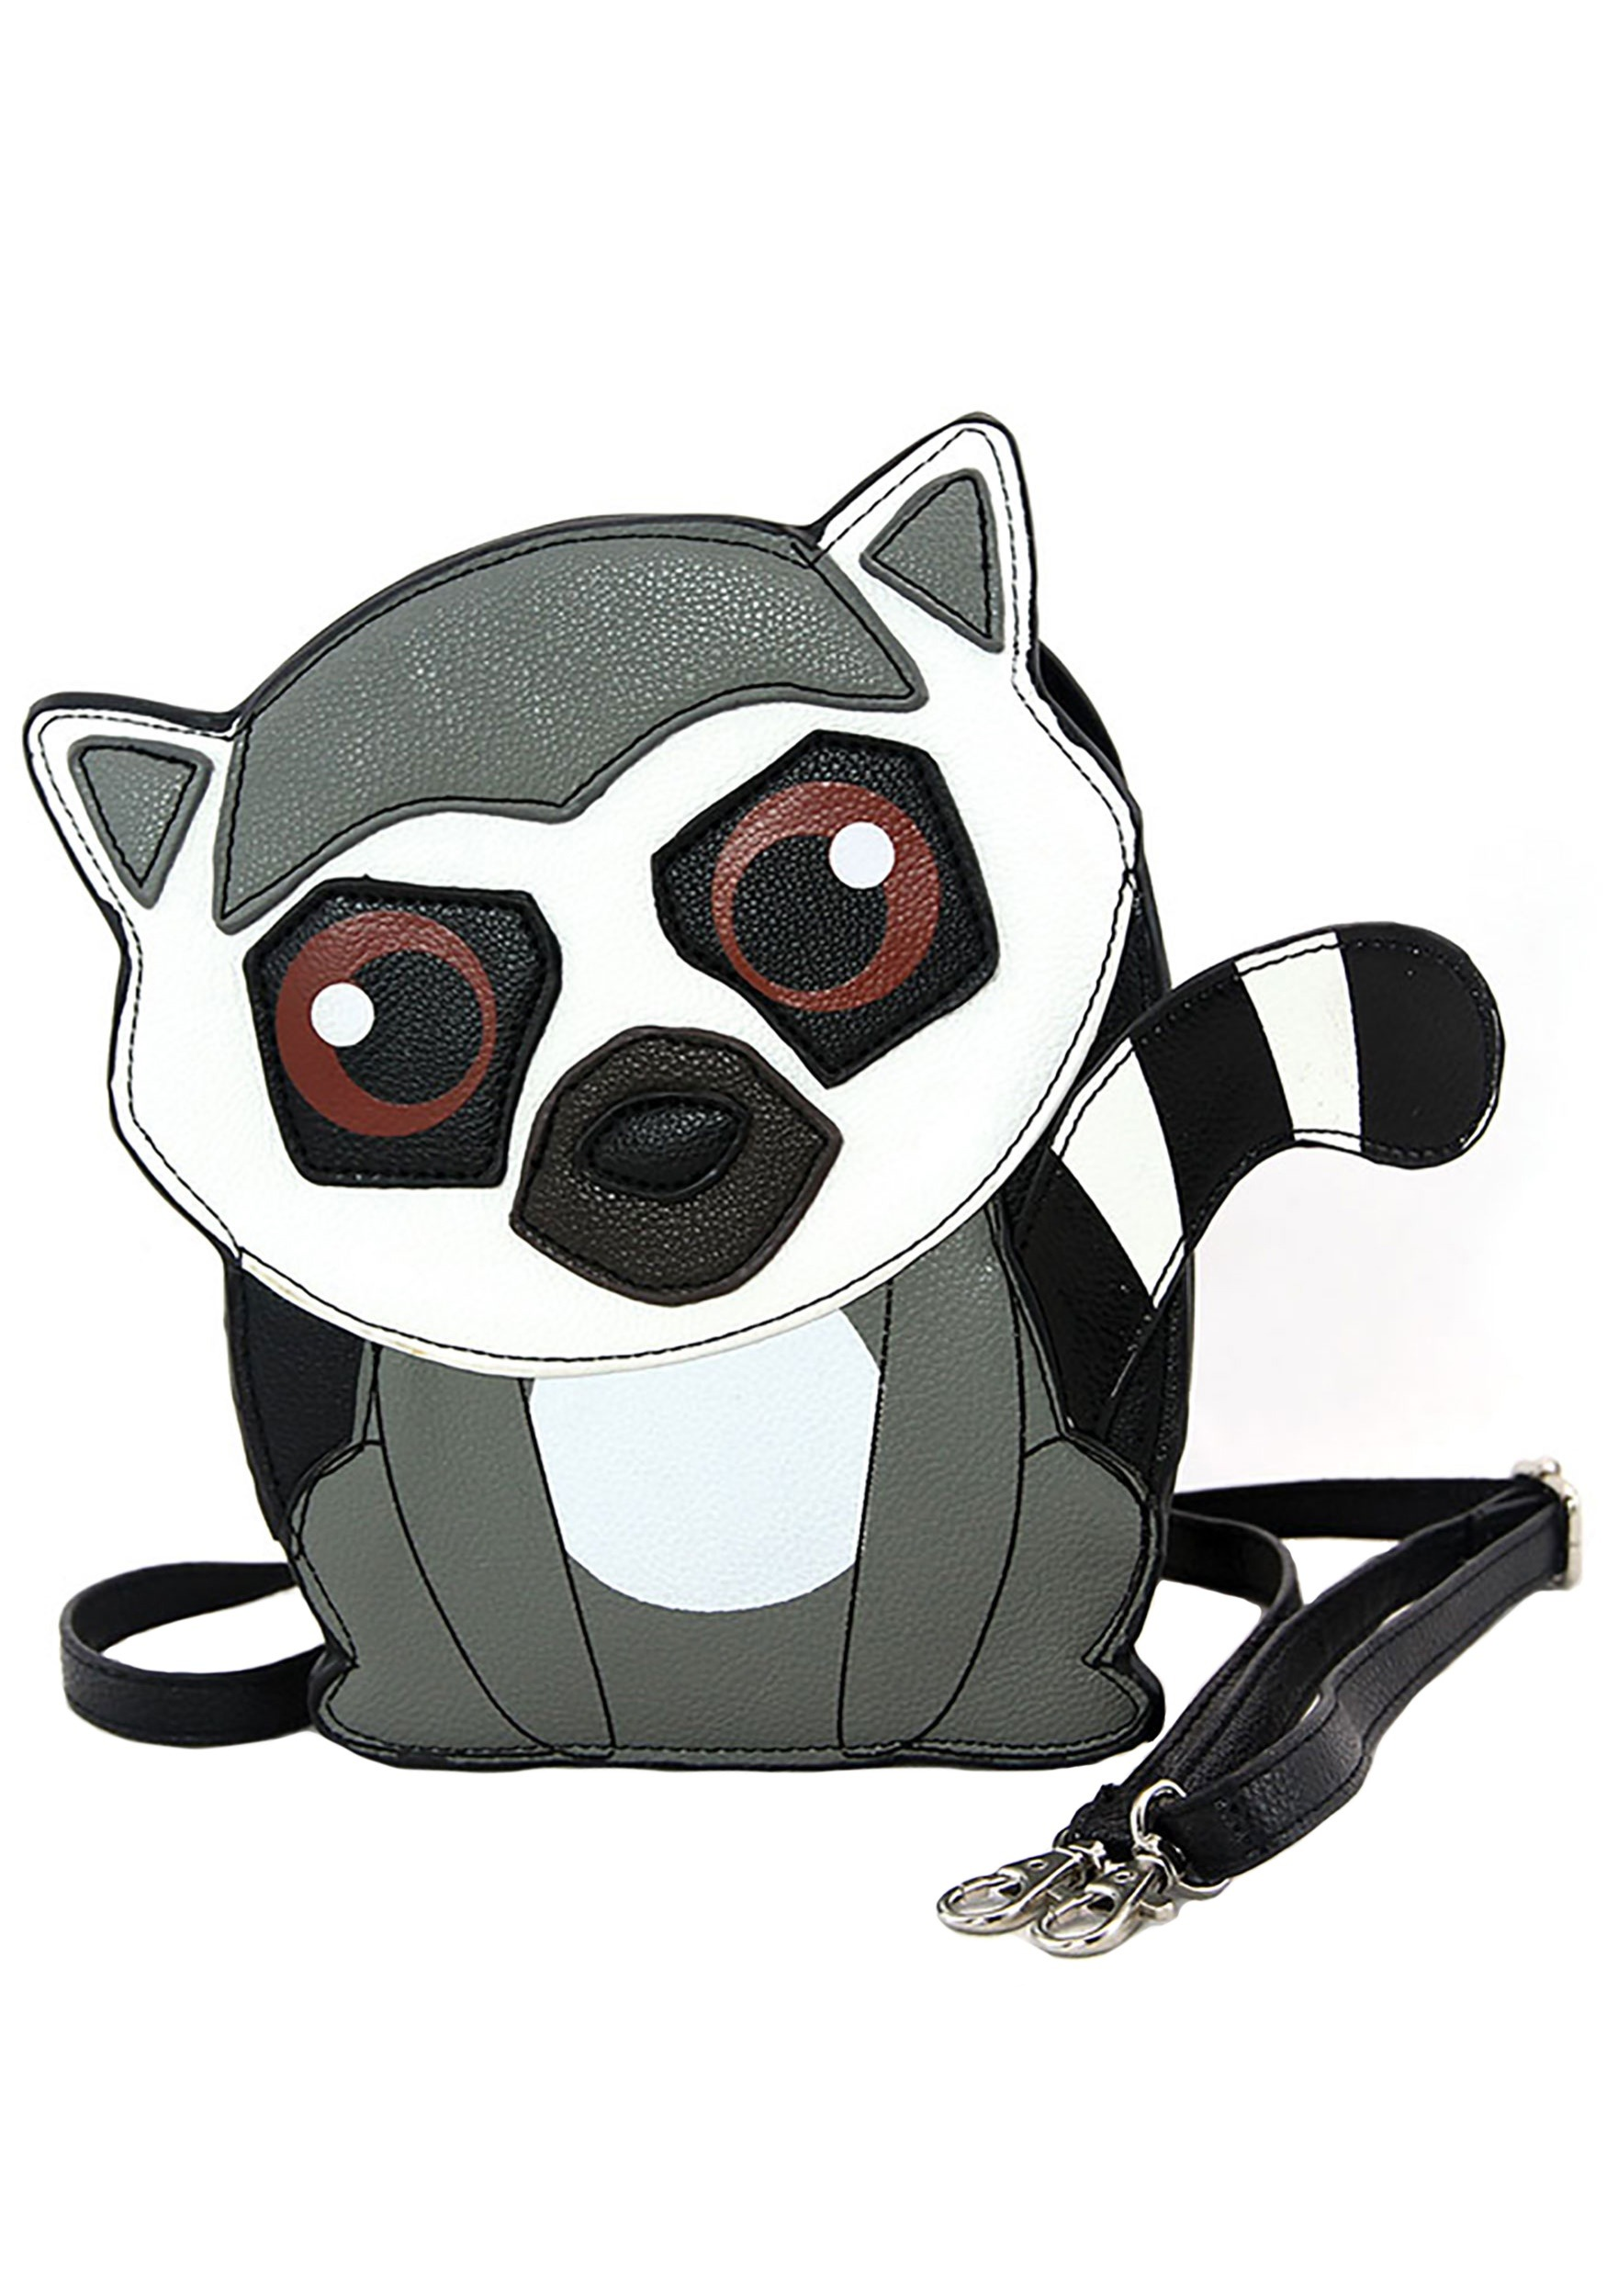 INOpets.com Anything for Pets Parents & Their Pets Sleepyville Critters - Crossbody Lemur Bag